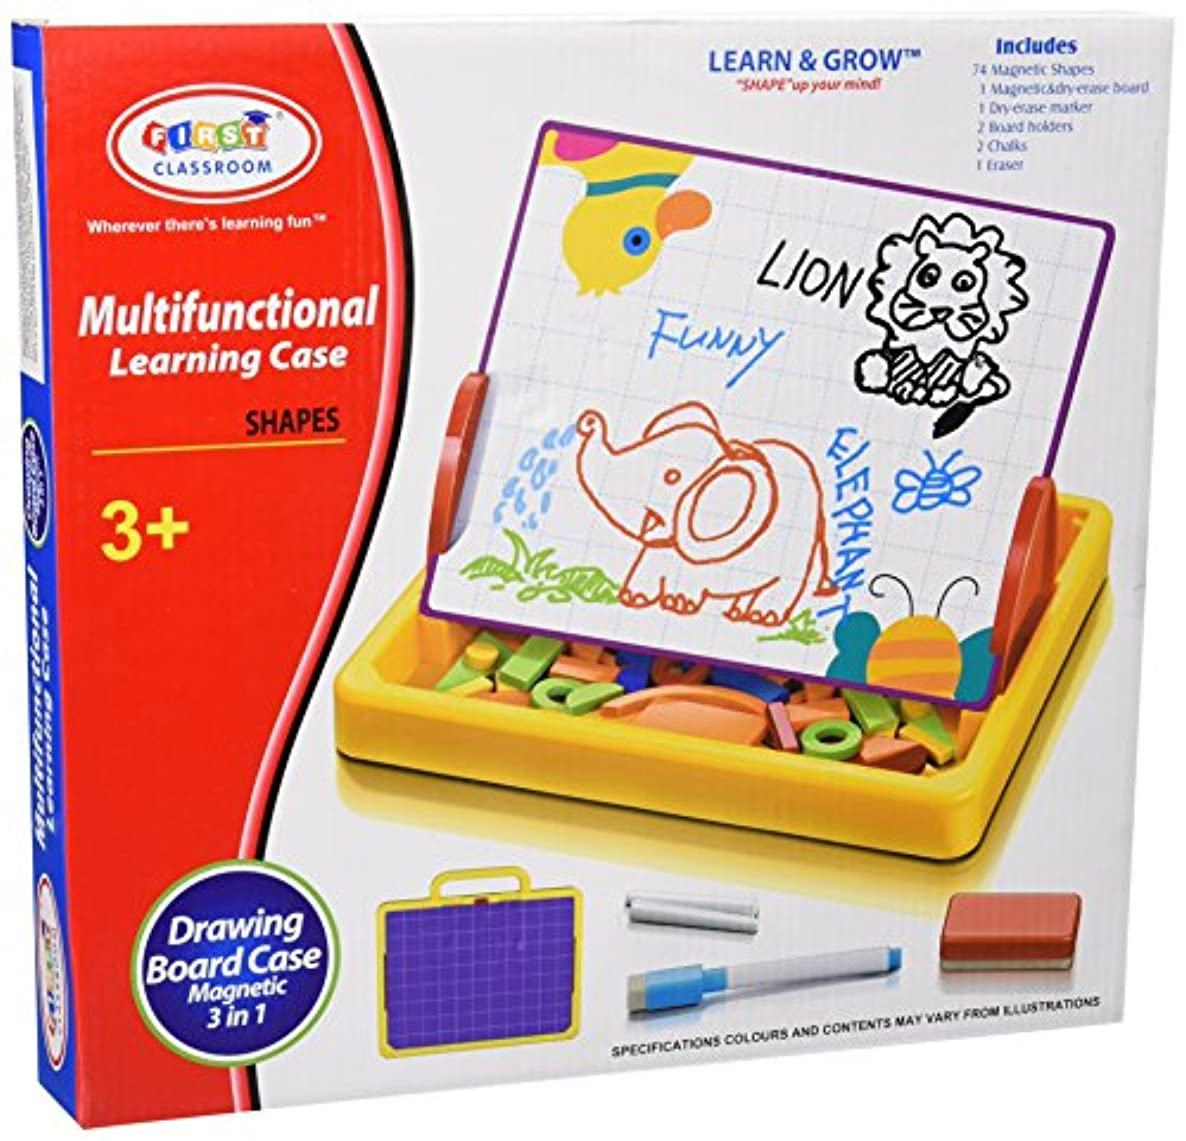 Te - Trend 18645?–?Educational Toy 3-in-1?Shapes Magnetic Board